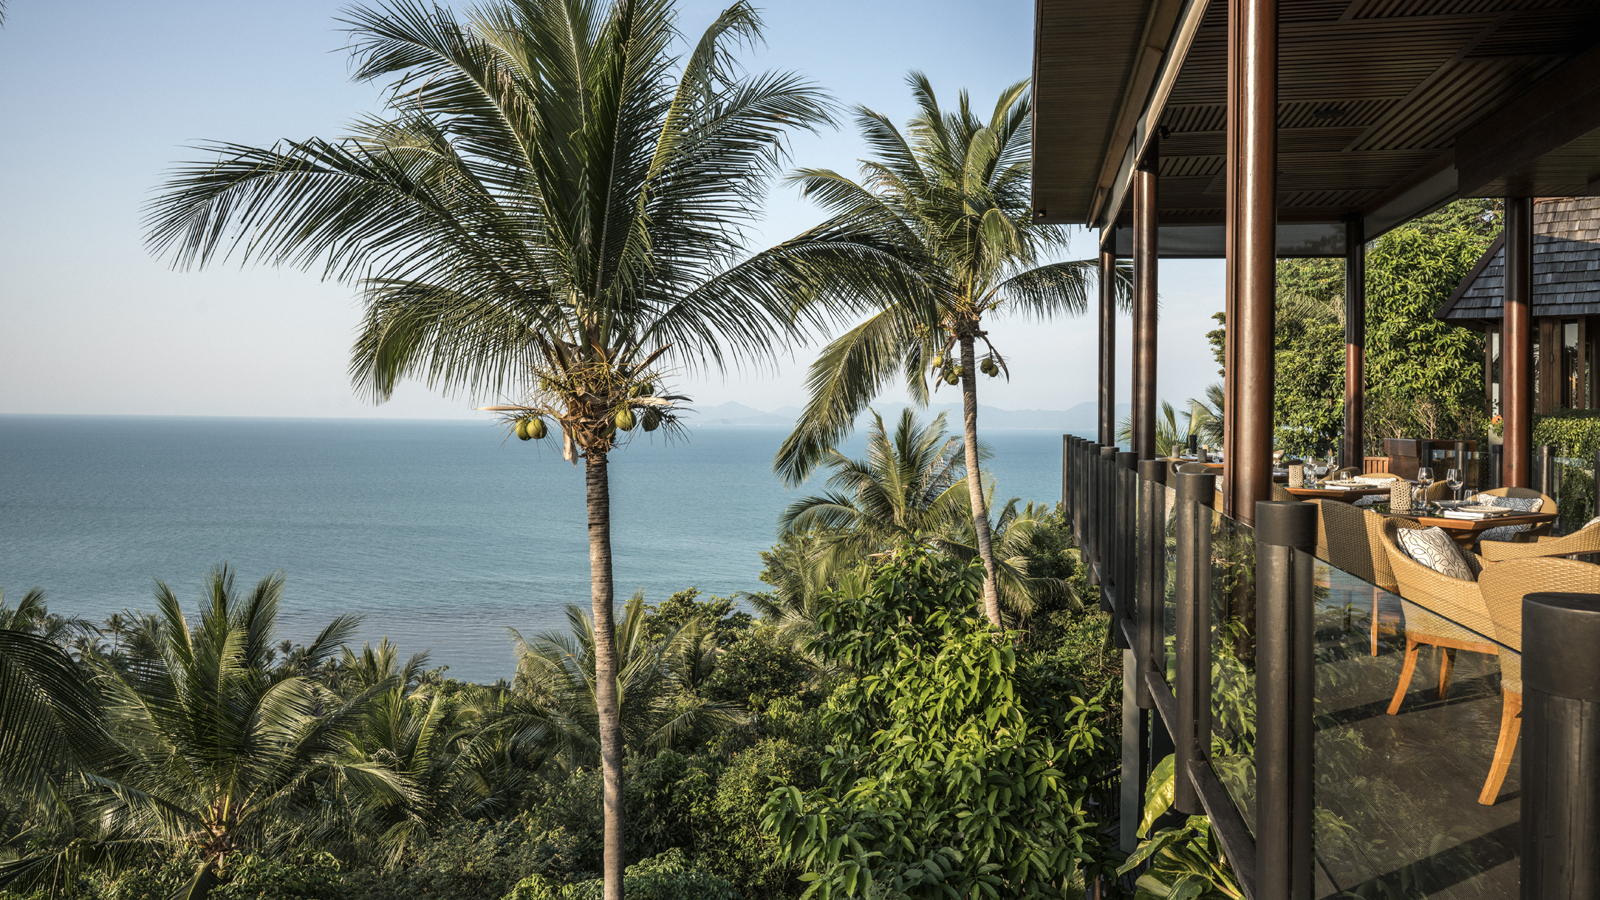 Bed and Breakfast Package Offered at Four Seasons Resort Koh Samui, a Luxury Resort in Koh Samui Thailand